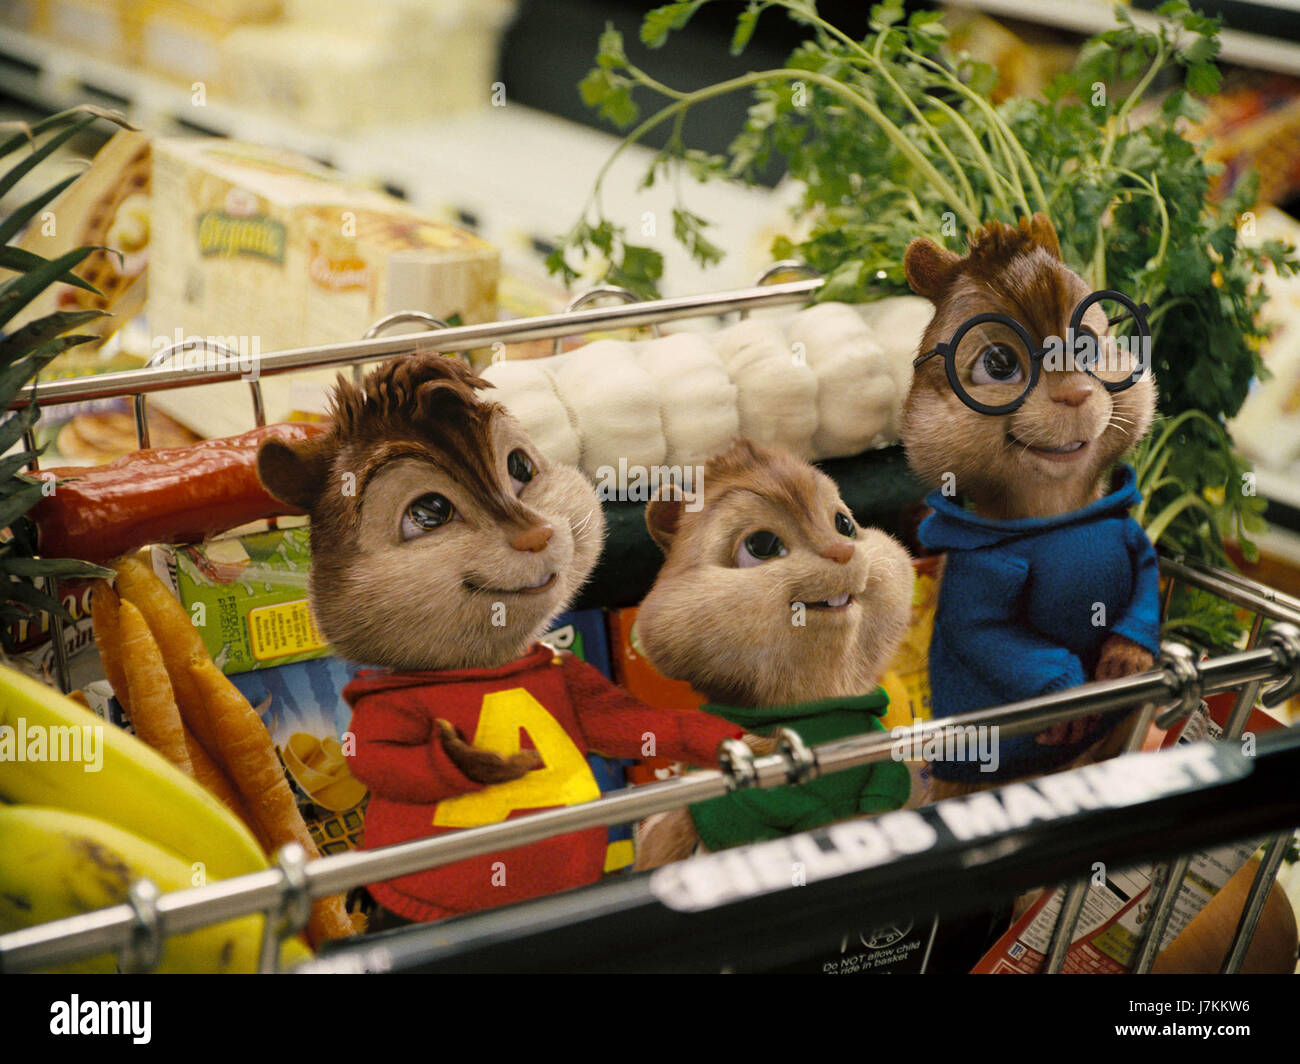 ALVIN AND THE CHIPMUNKS (2007)  TIM HILL (DIR)  20TH CENTURY FOX/MOVIESTORE COLLECTION LTD - Stock Image